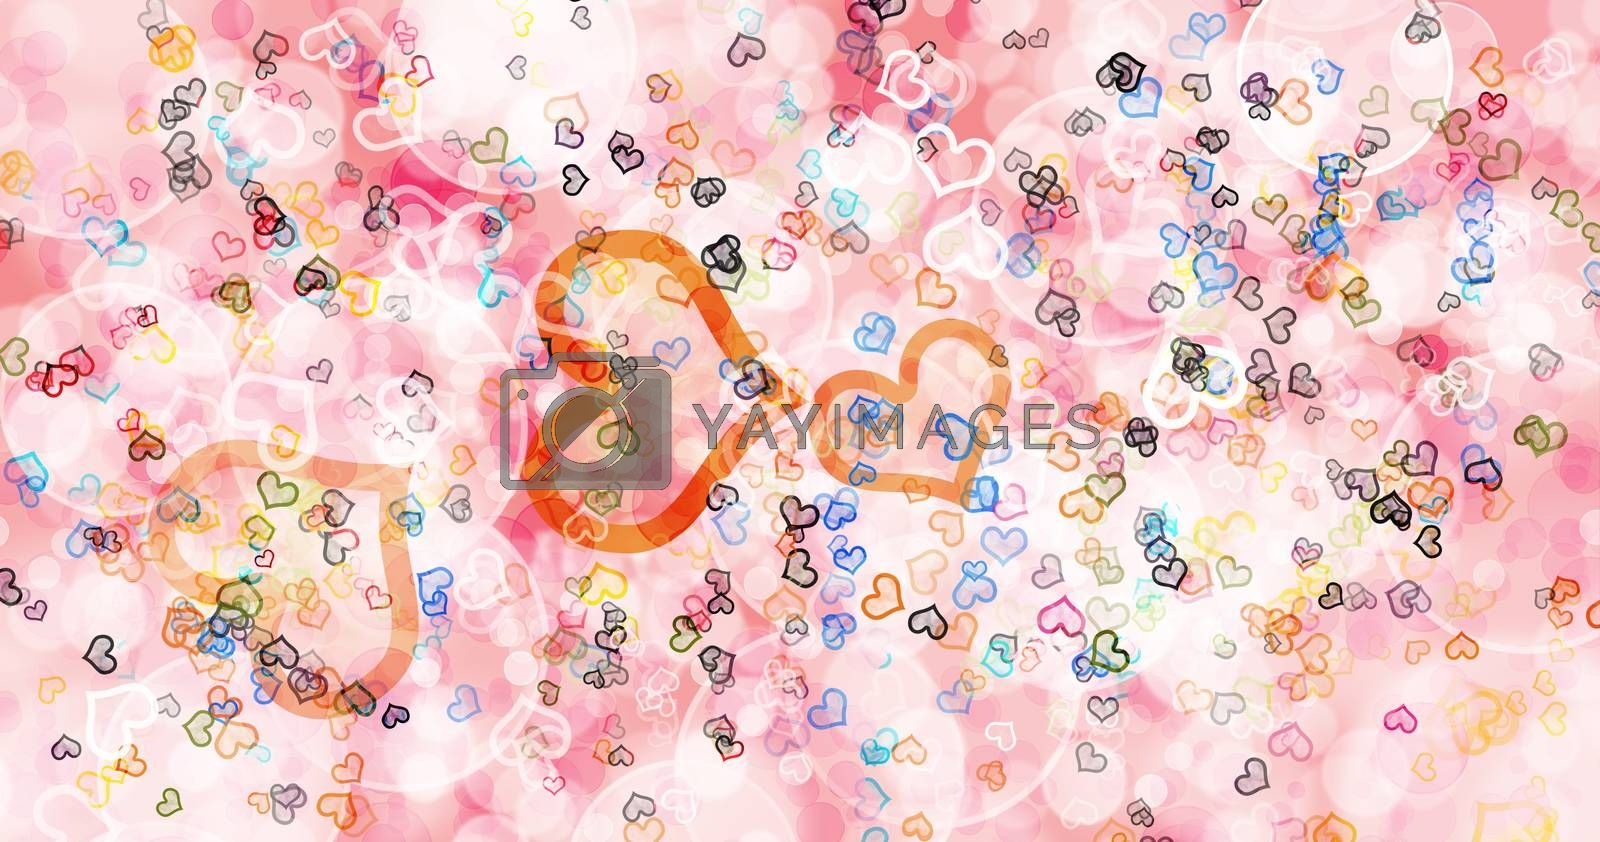 Pink mixed with light colors background.The bubbles float to look bright and gentle.Used for general background work.